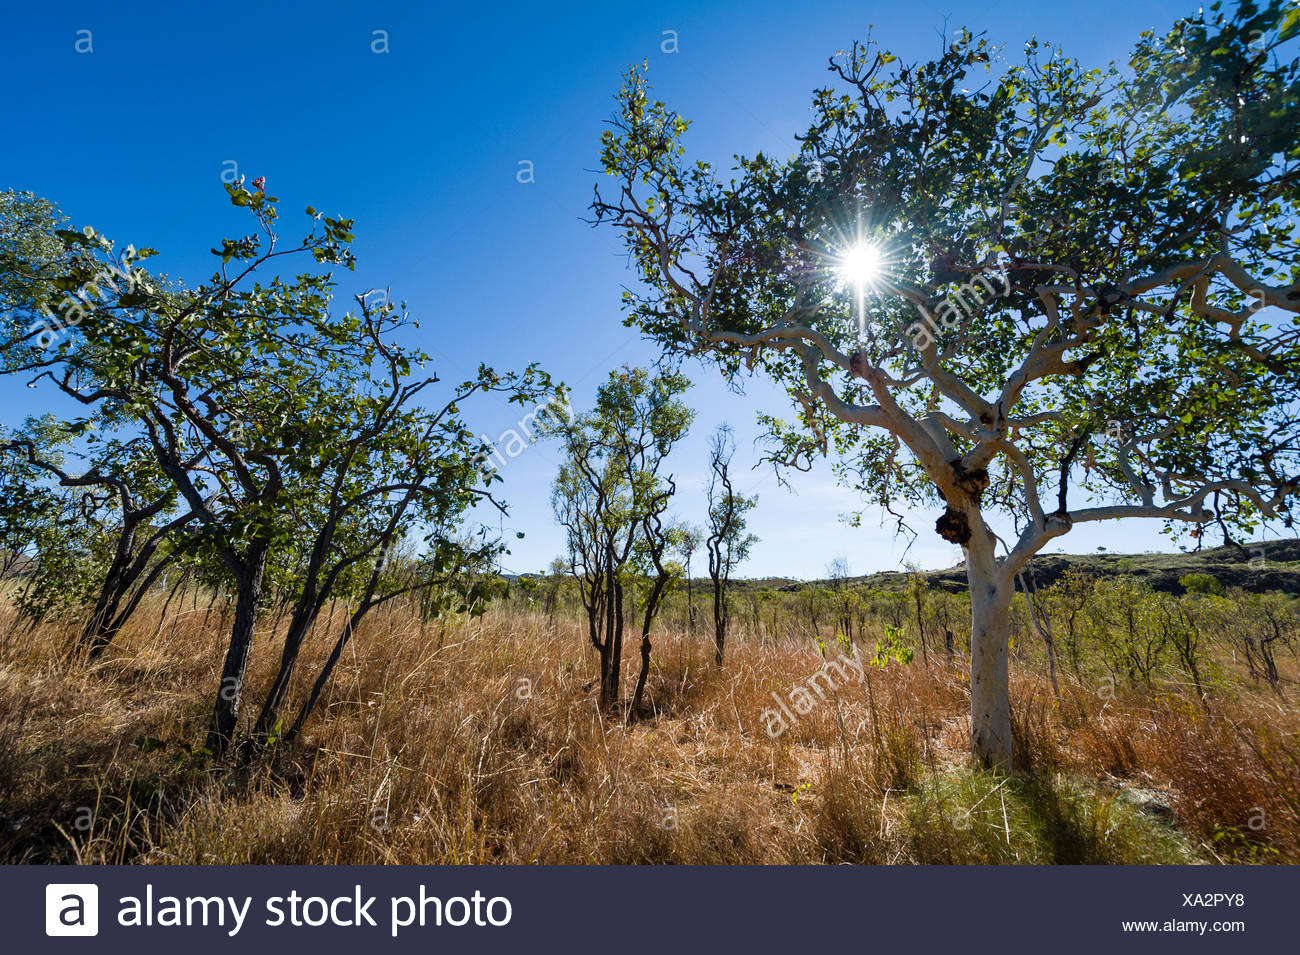 A Snappy Gum and Bloodwood trees on a dry grass plain. - Stock Image